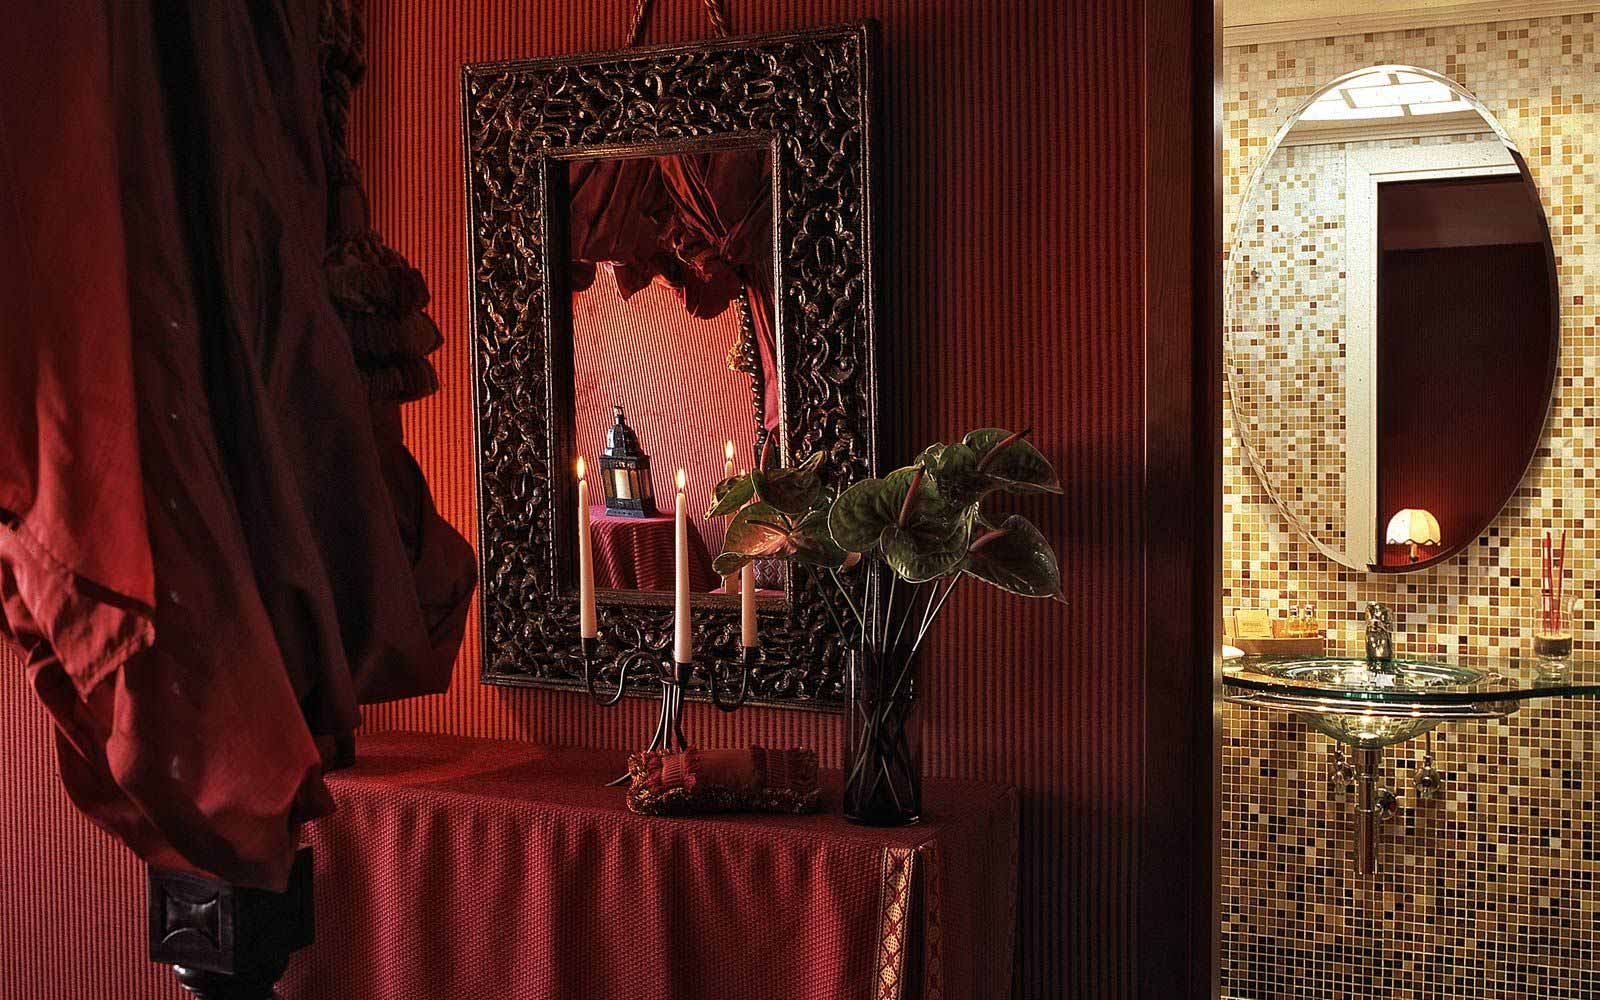 Detail of a Deluxe double room at Hotel Metropole